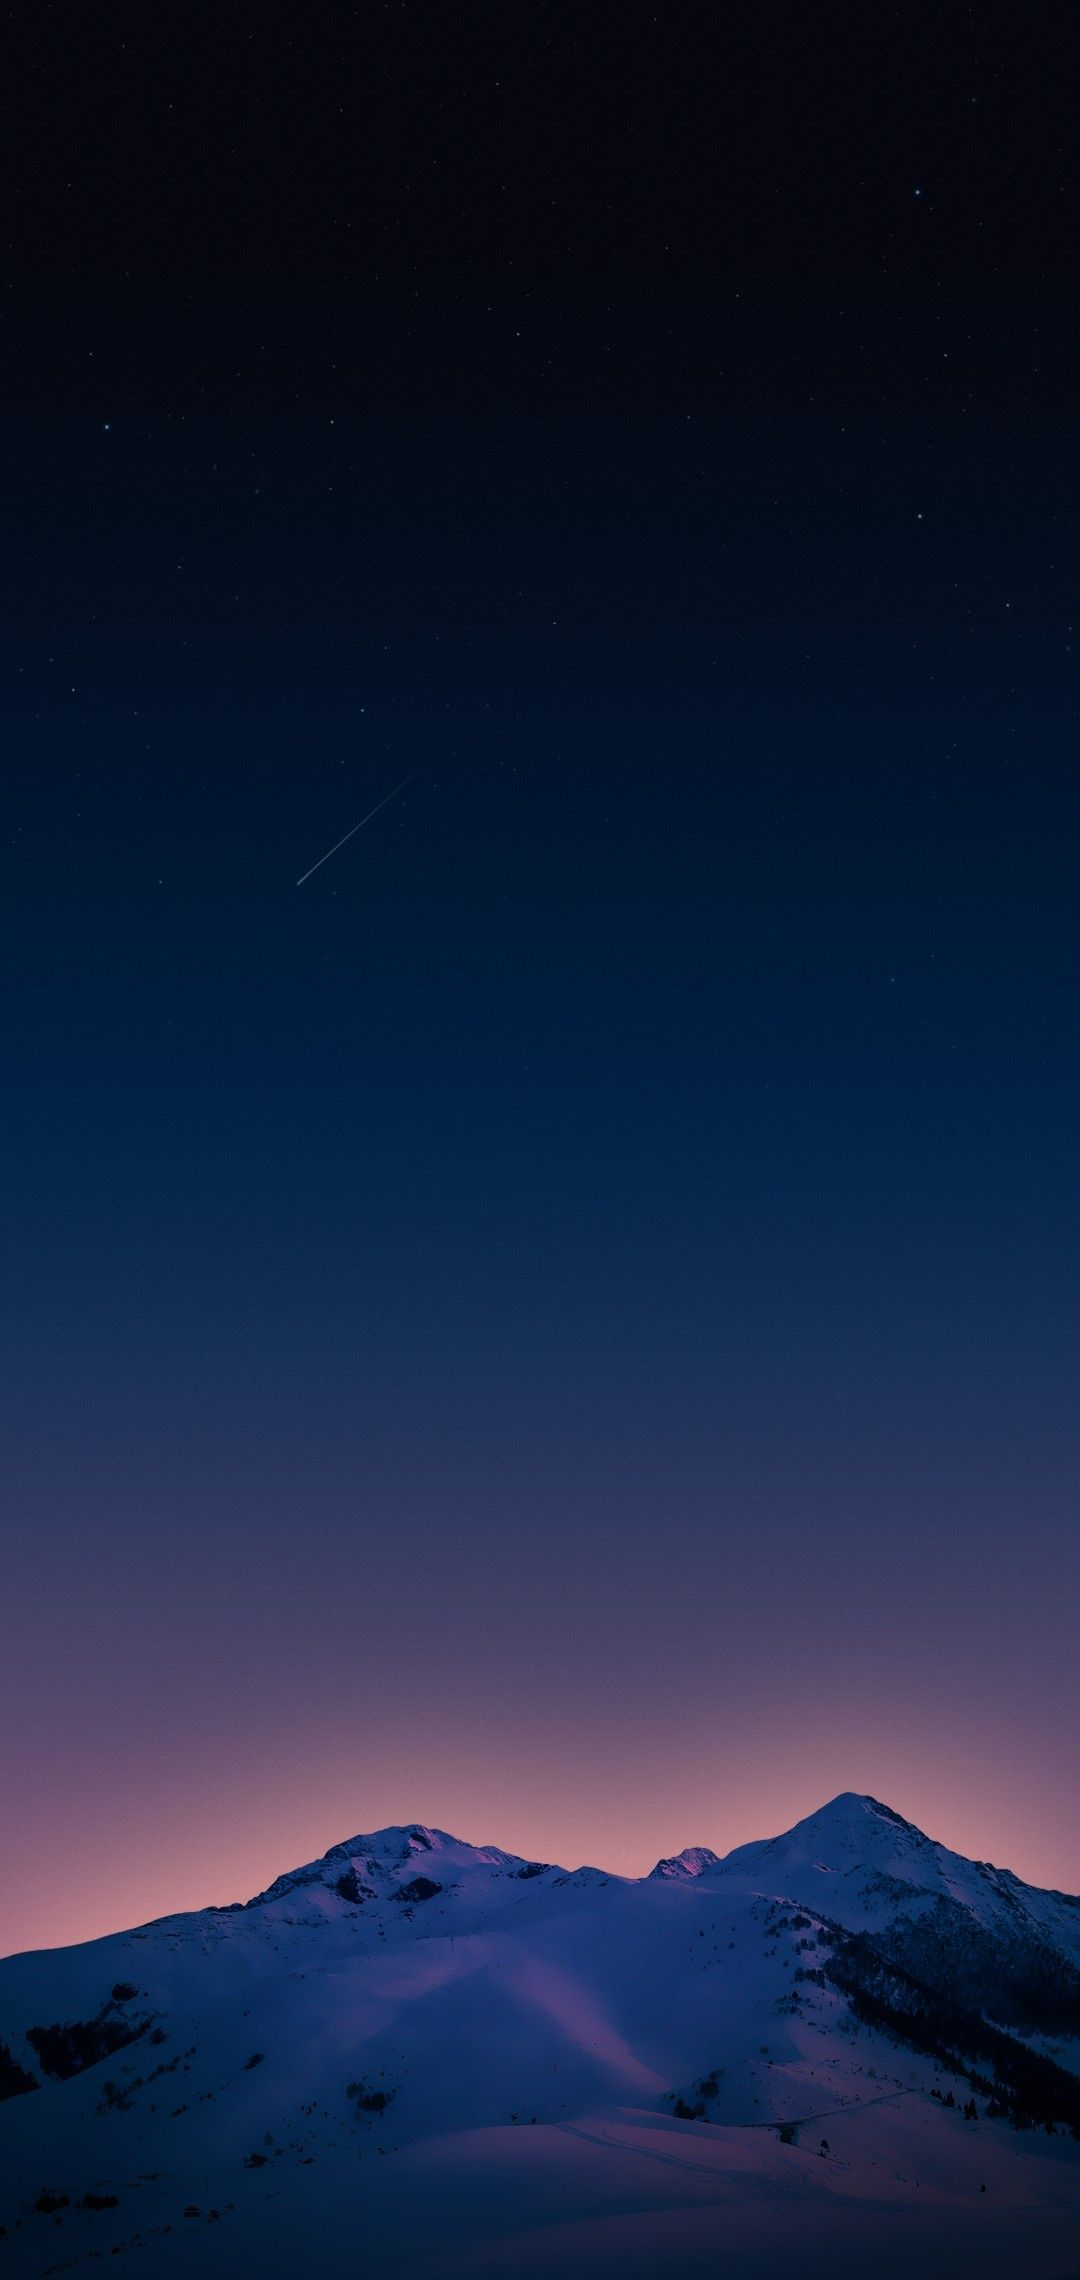 Mountain, Sky, Blue, Night, Stars, Wallpaper, Clean, Galaxy,